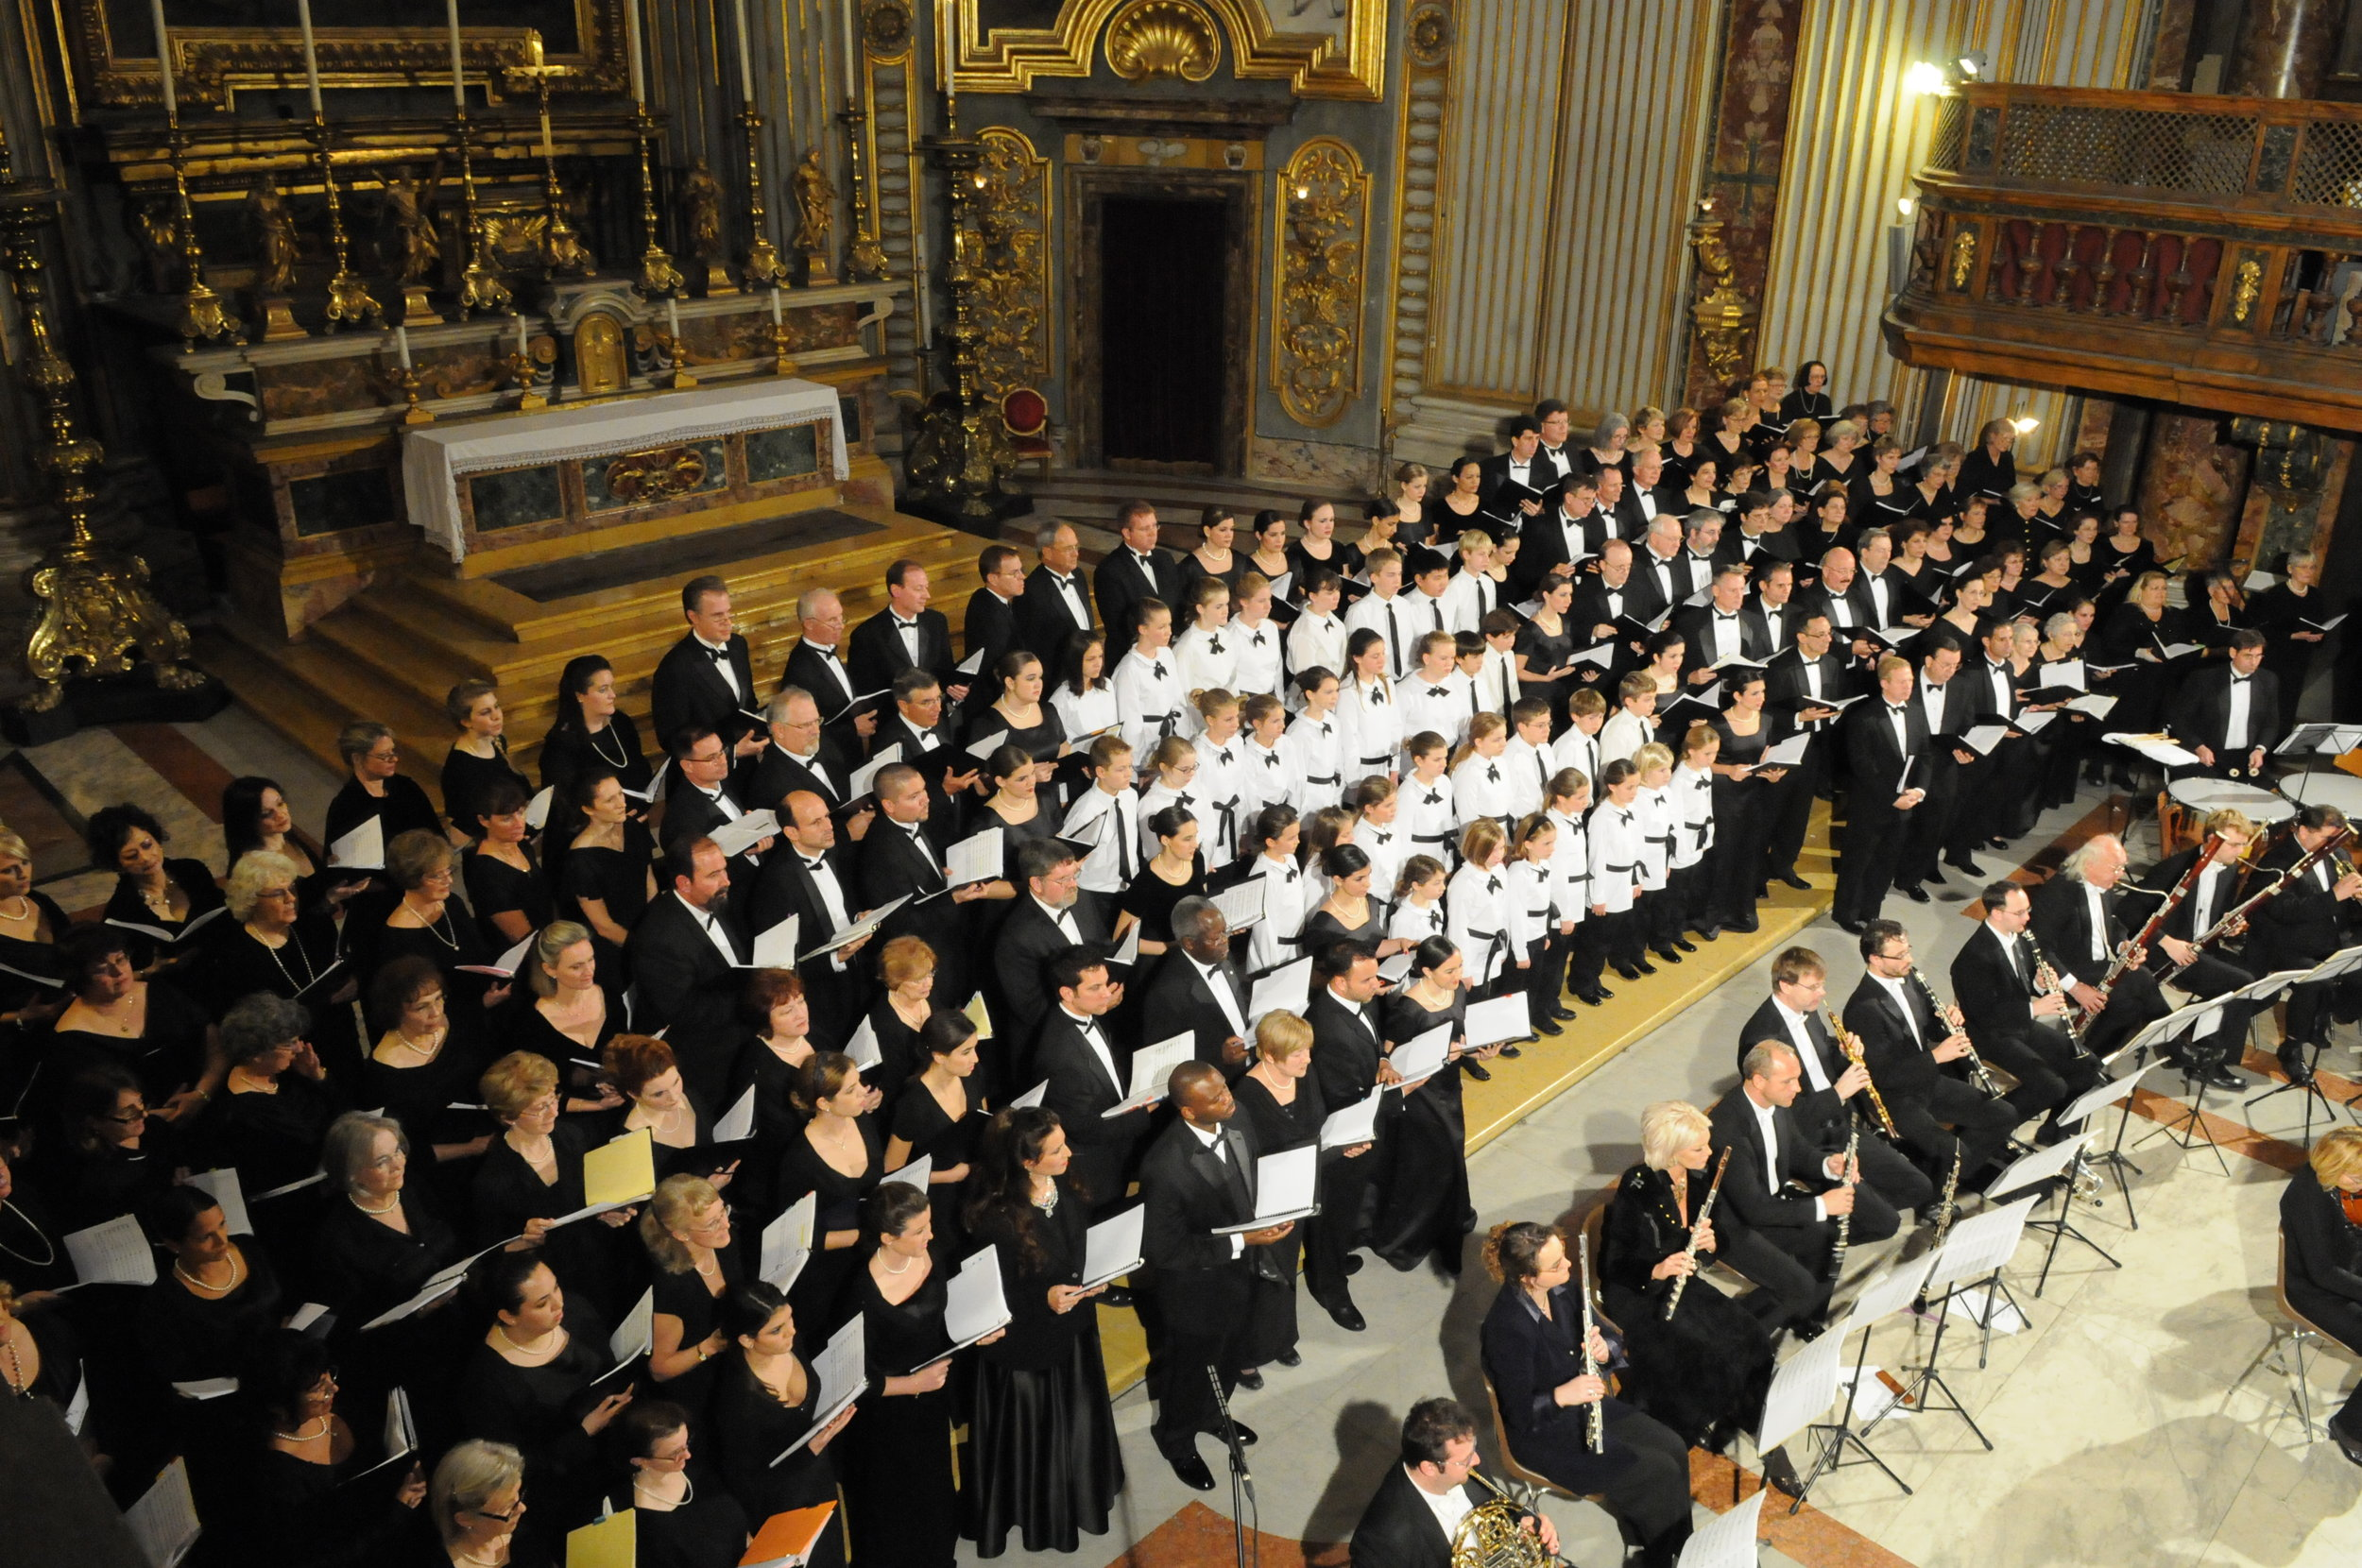 The Continuo Arts Symphonic Chorus Performing  Requiem For My Mother  in Vatican City in 2008.